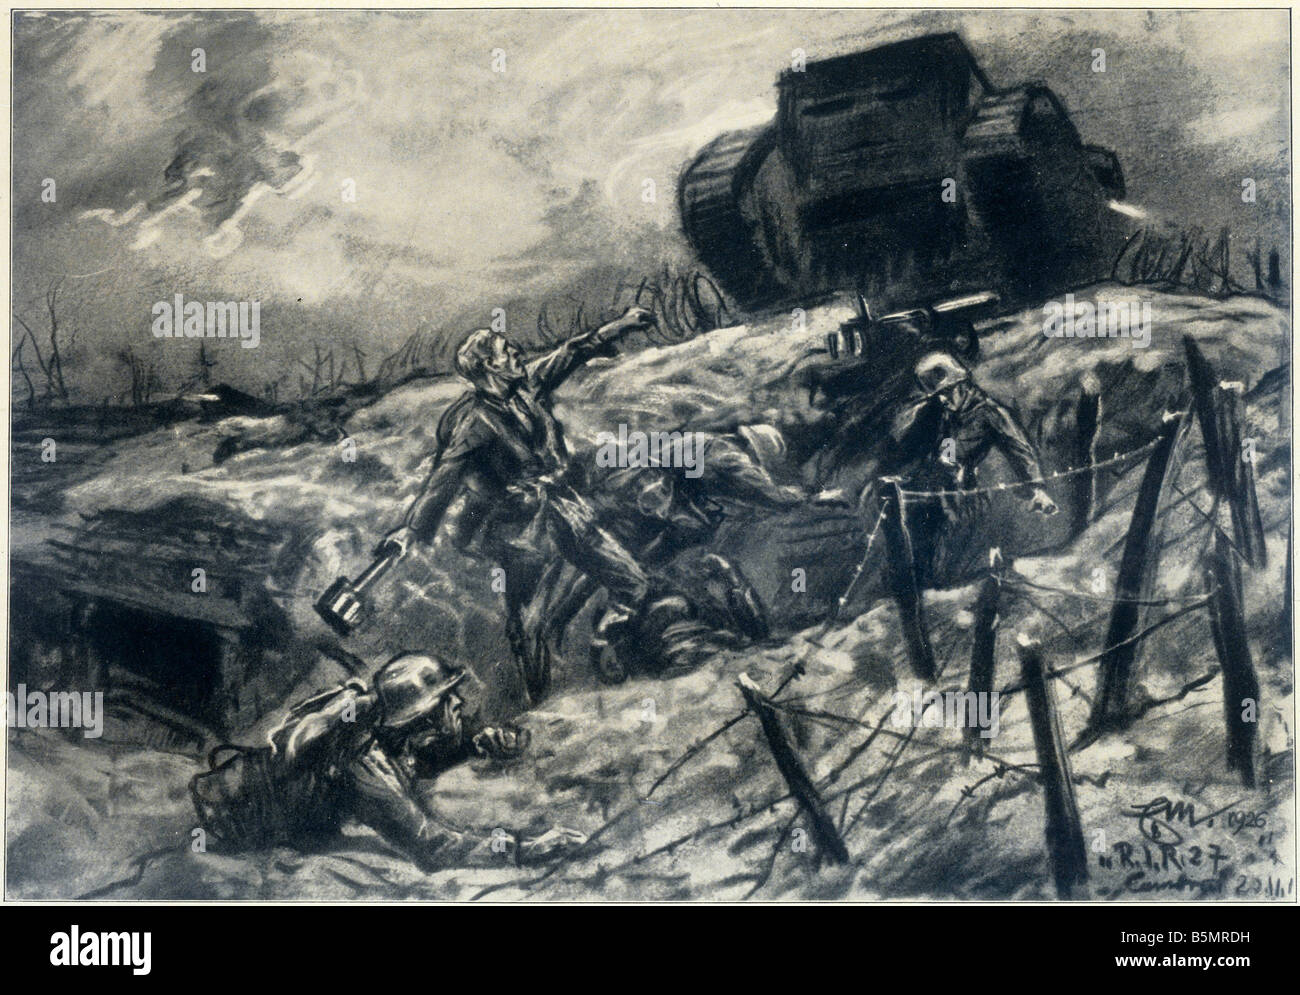 9 1917 11 20 A1 2 World War I Tank battle Cambrai Mattscha First World War 1914 18 Western Front Tank battle at - Stock Image